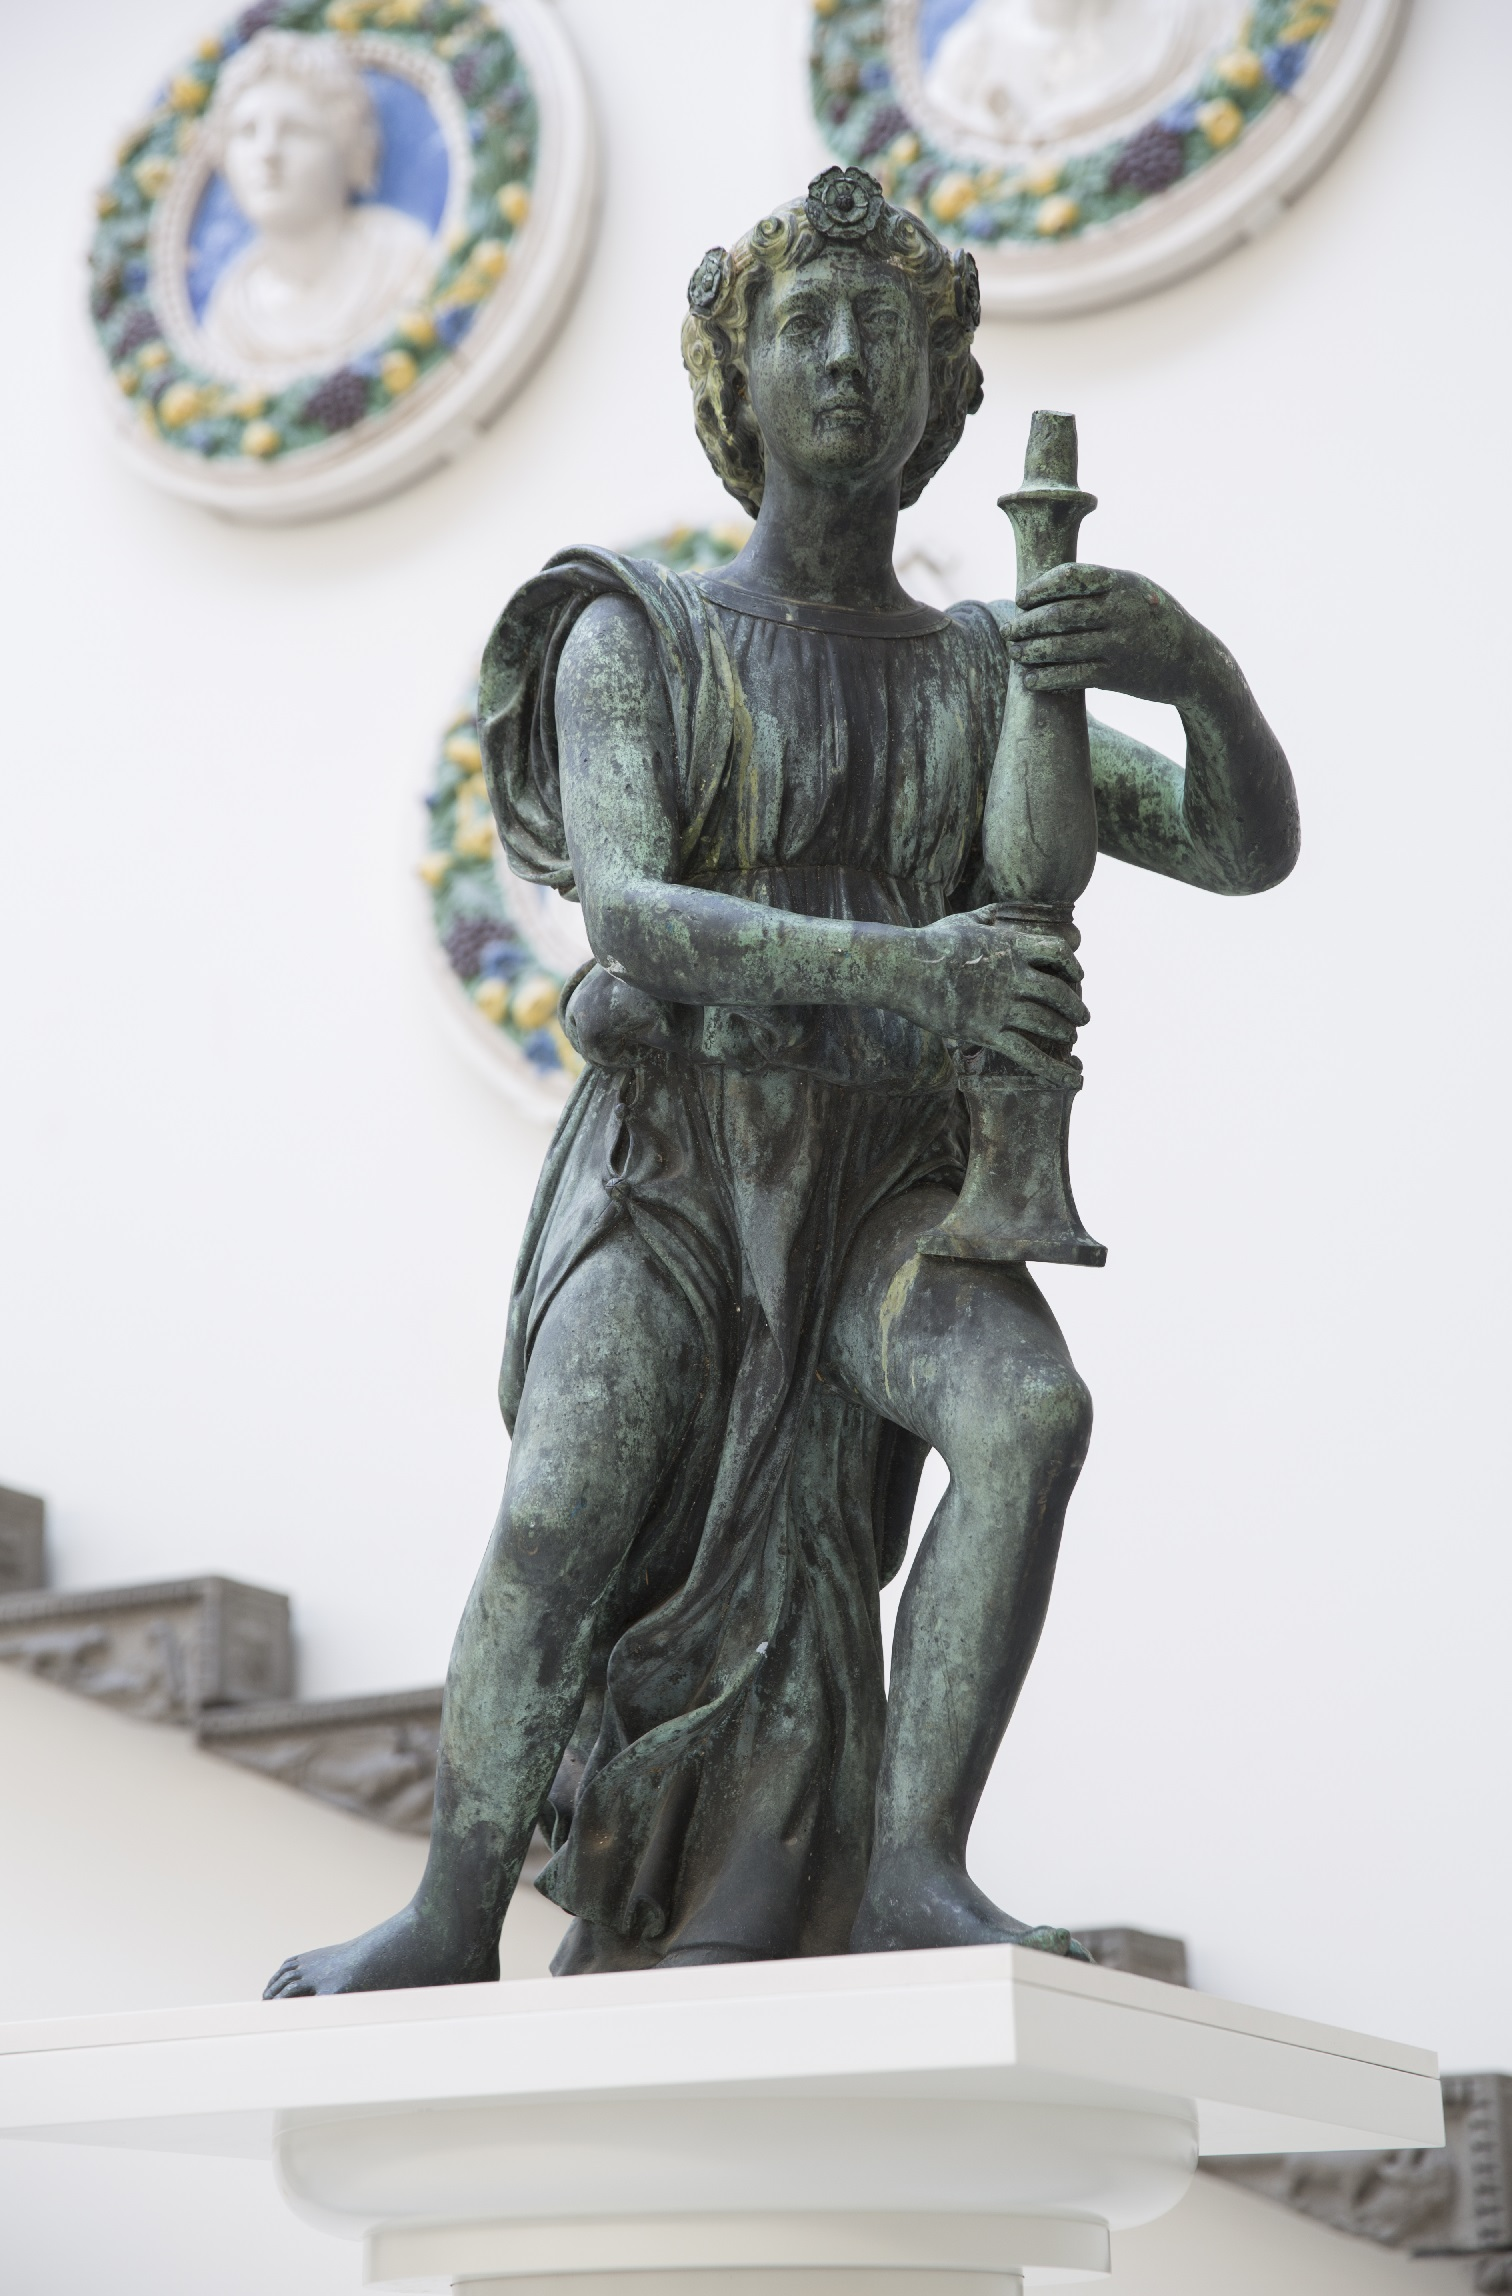 The History Blog February - Artist makes angel sculpture from more than 100000 confiscated weapons